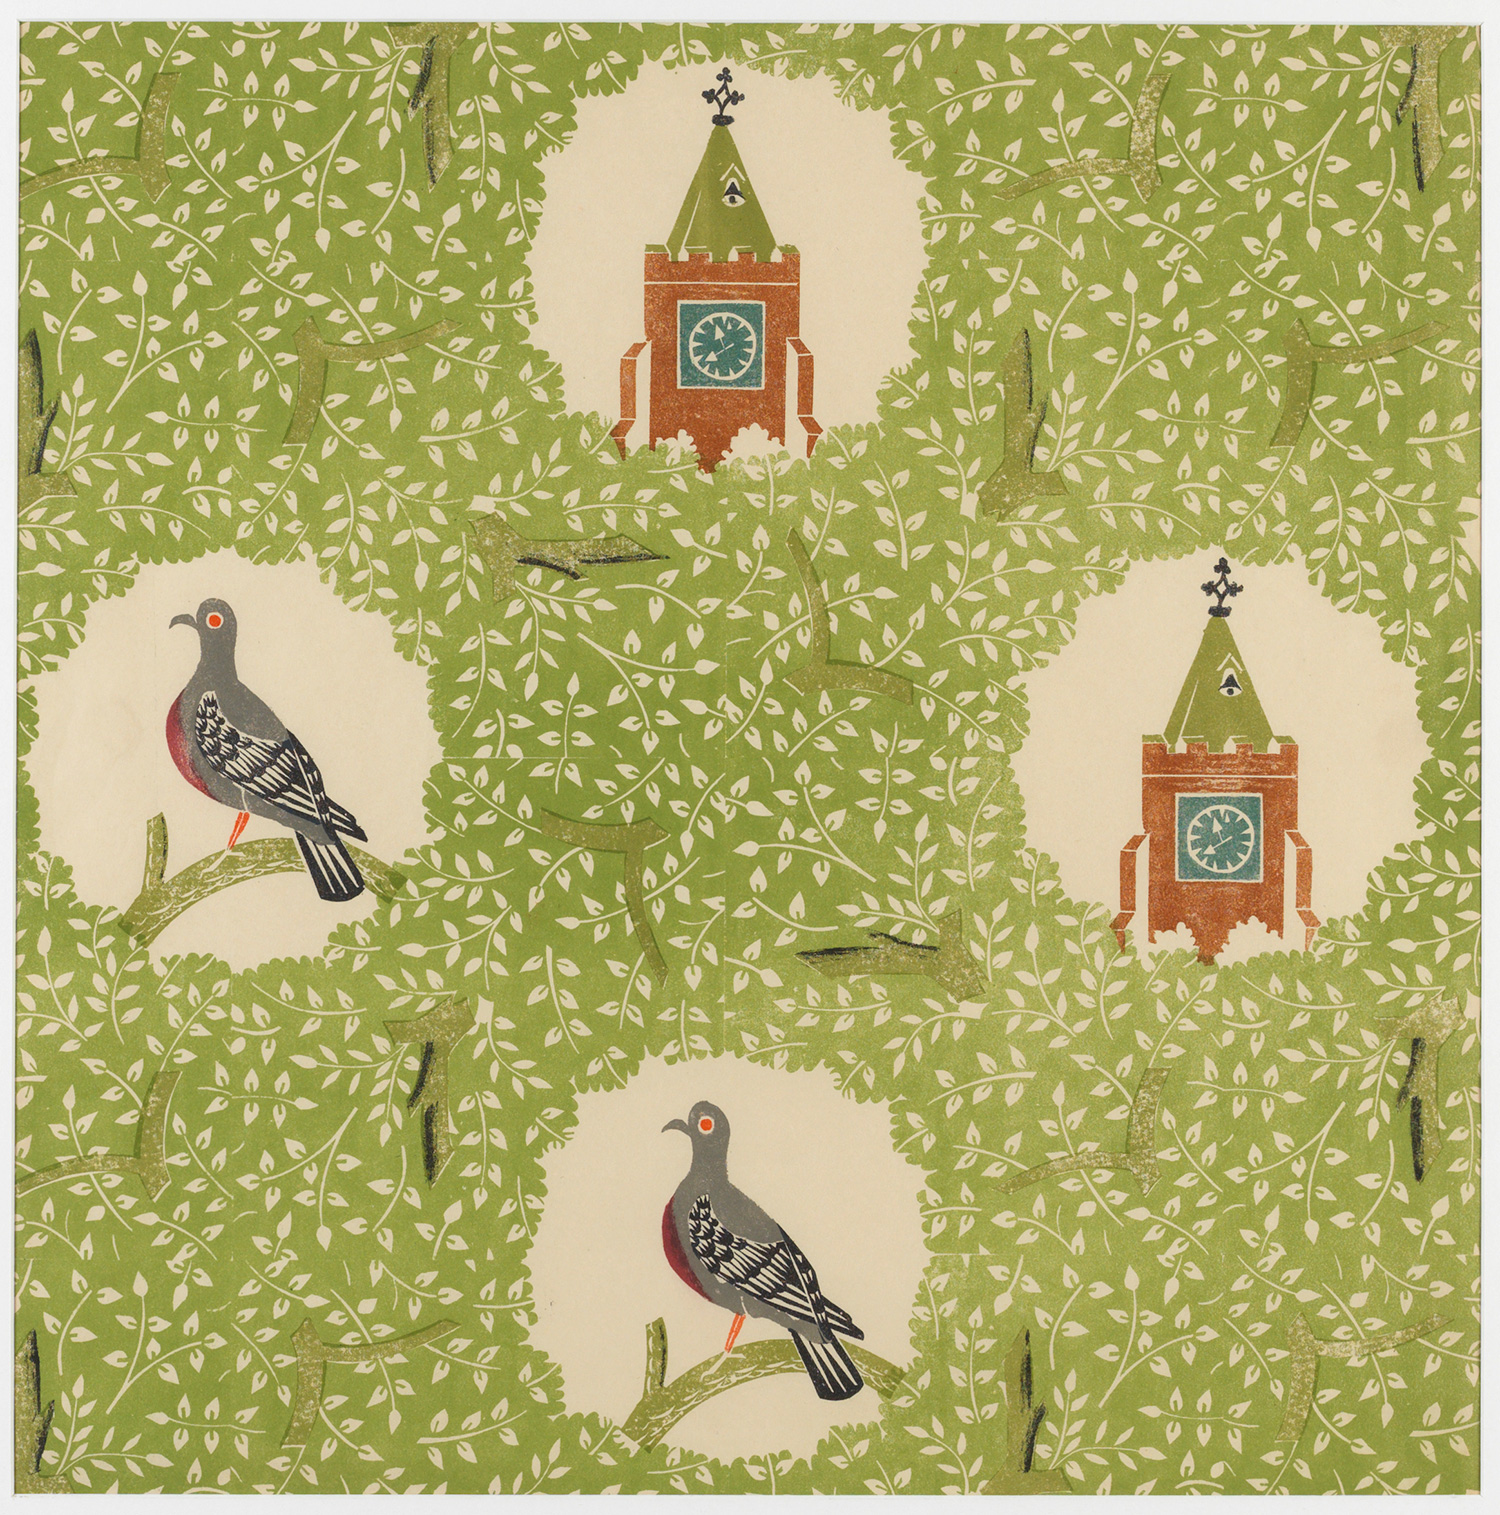 Edward Bawden 'Pigeon and Clock Tower'